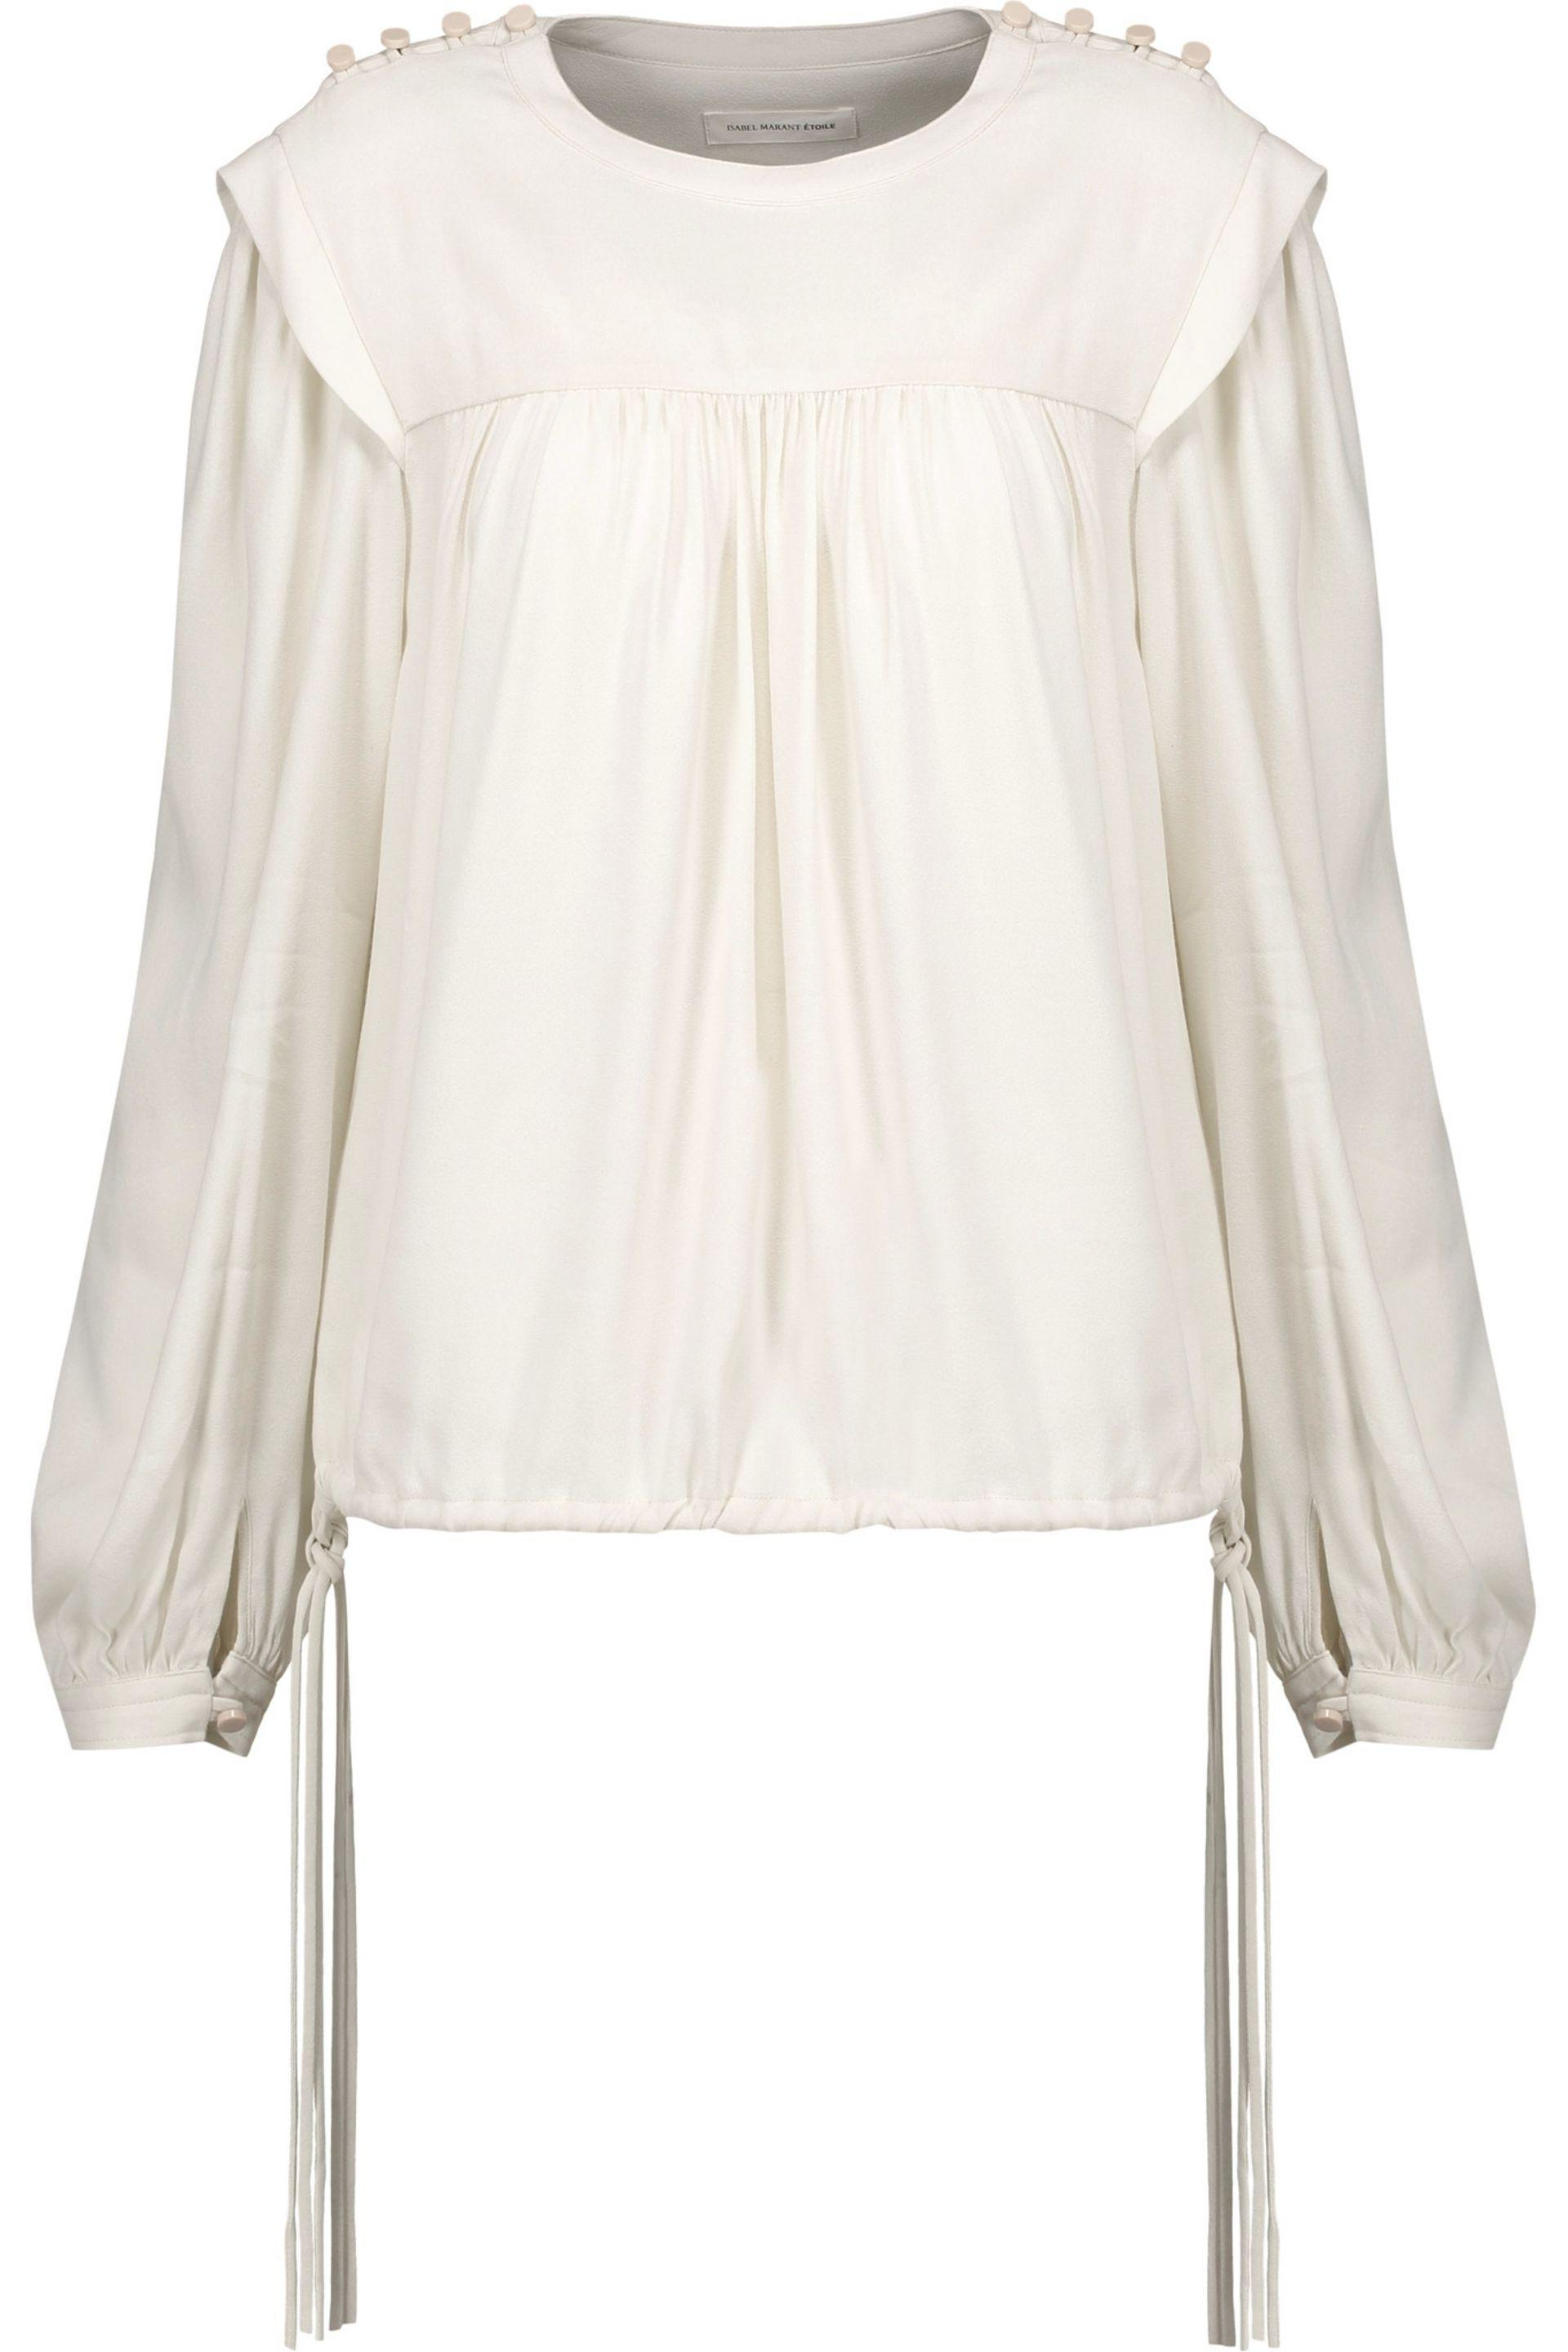 Outlet In China Buy Cheap Best Wholesale Isabel Marant Étoile Woman Laper Gathered Cotton And Silk-blend Voile Blouse White Size 38 Isabel Marant For Nice For Sale Cheap Geniue Stockist Outlet Cheap Prices FwxQtW